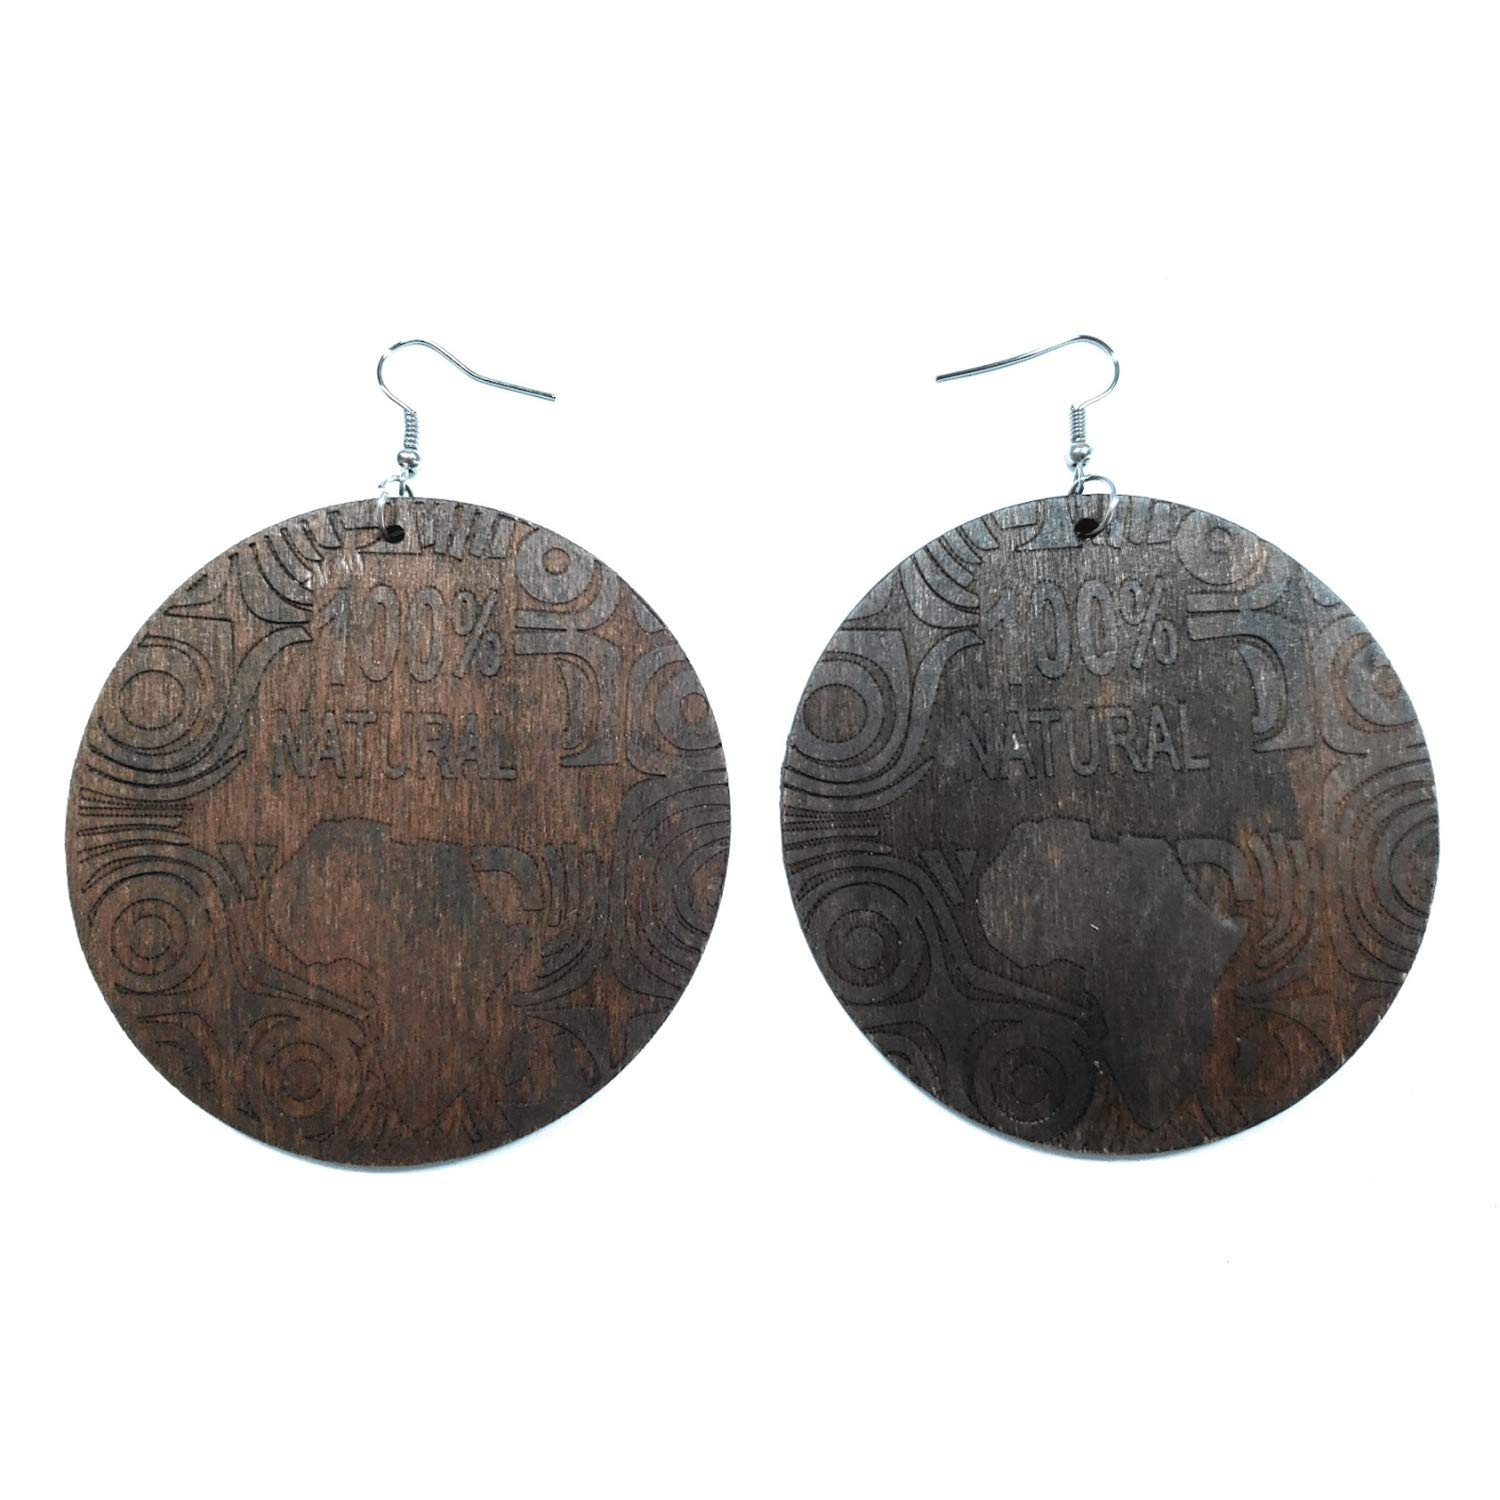 Teris Boutique 100/% Natural African American Light Weight Big Round Dangle Fashion Jewelry Earrings